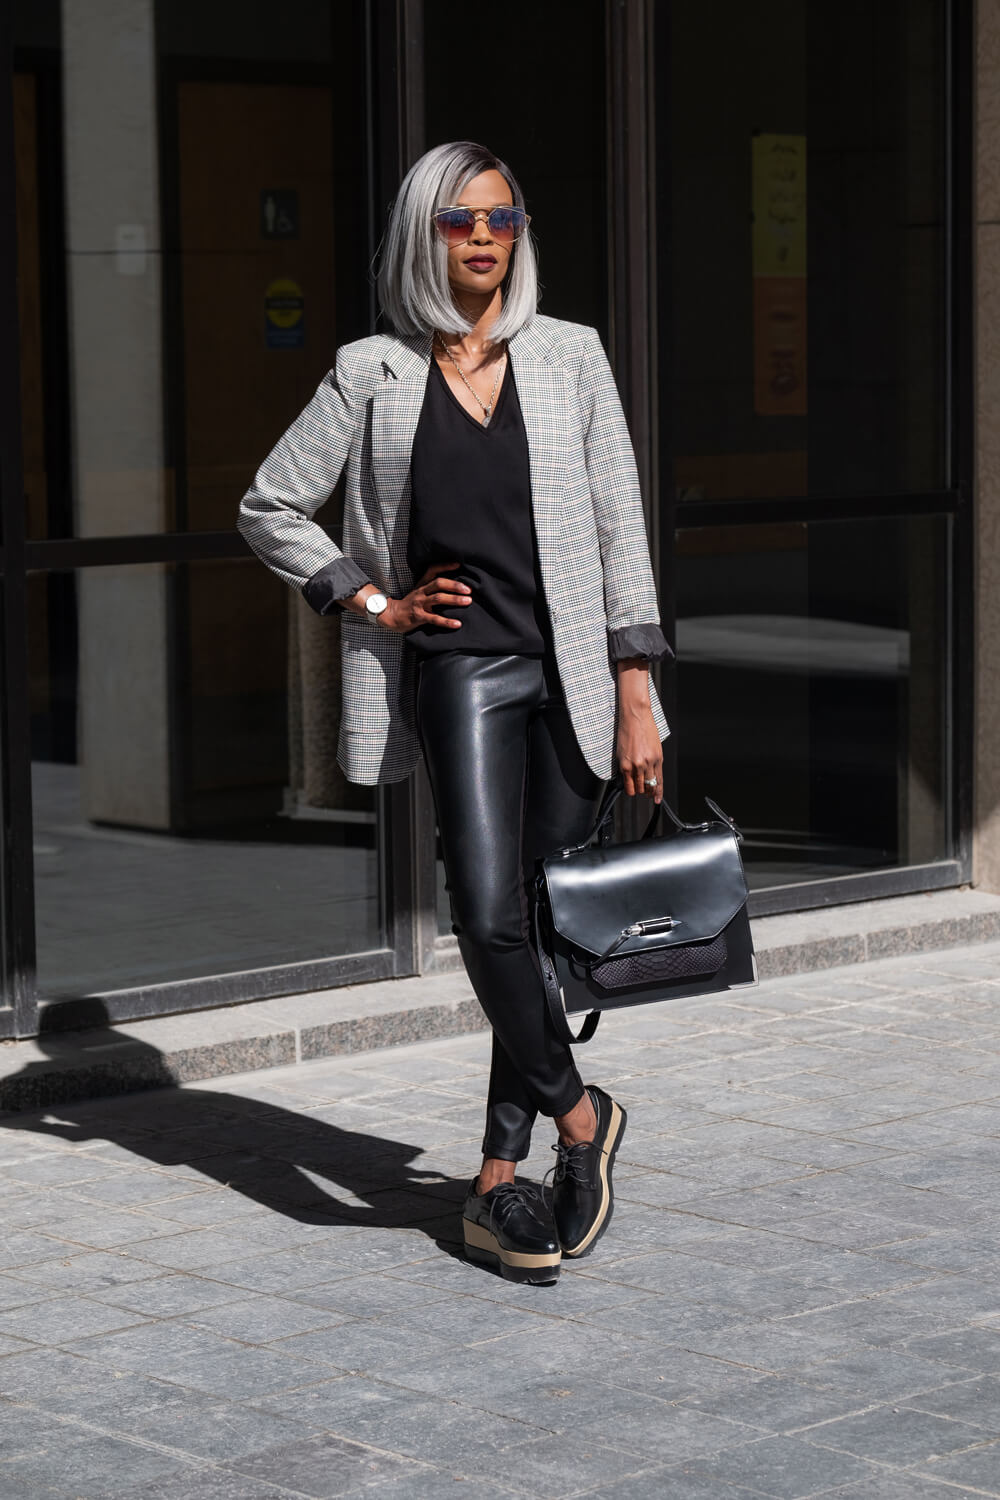 Boyfriend Blazers, Blazers, Office Chic, Leather Leggings, Black Platform Oxford Shoes